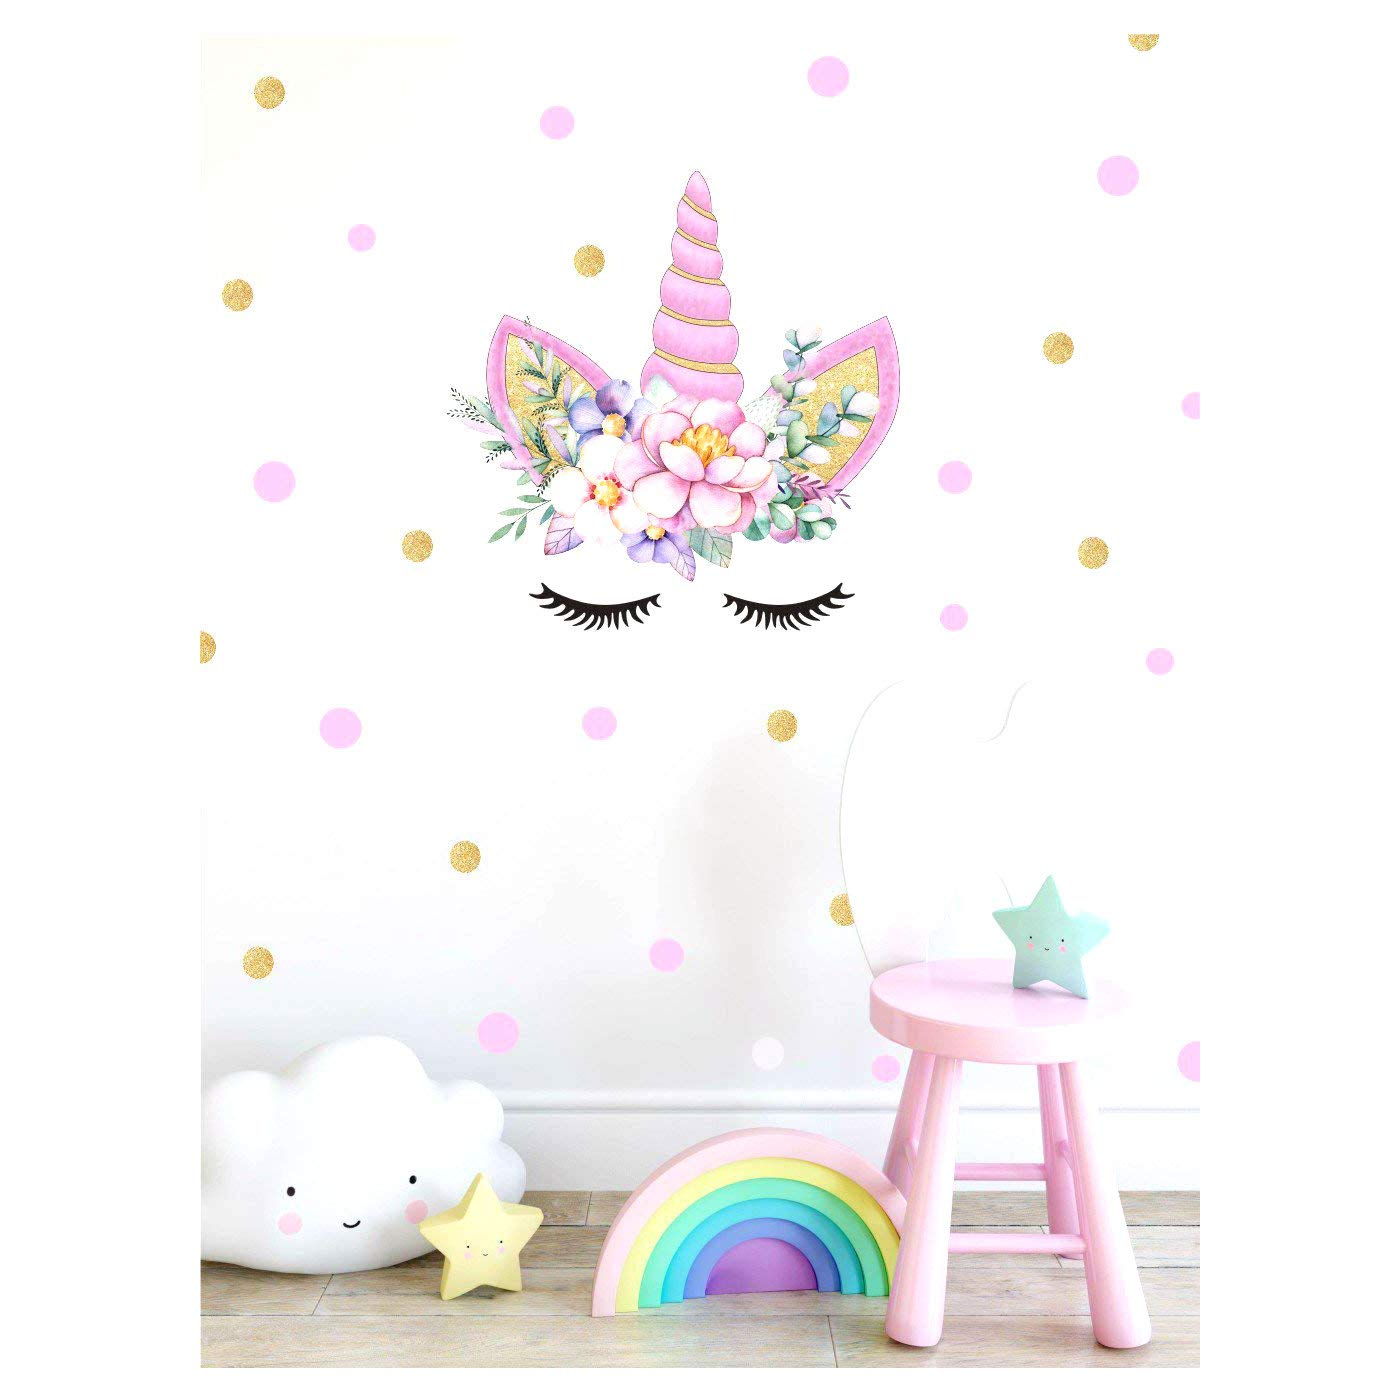 KUYUE Wall Decals Removable Purple Unicorn Wall Stickers for Girls Decorations Bedroom Living Room Playroom Classroom